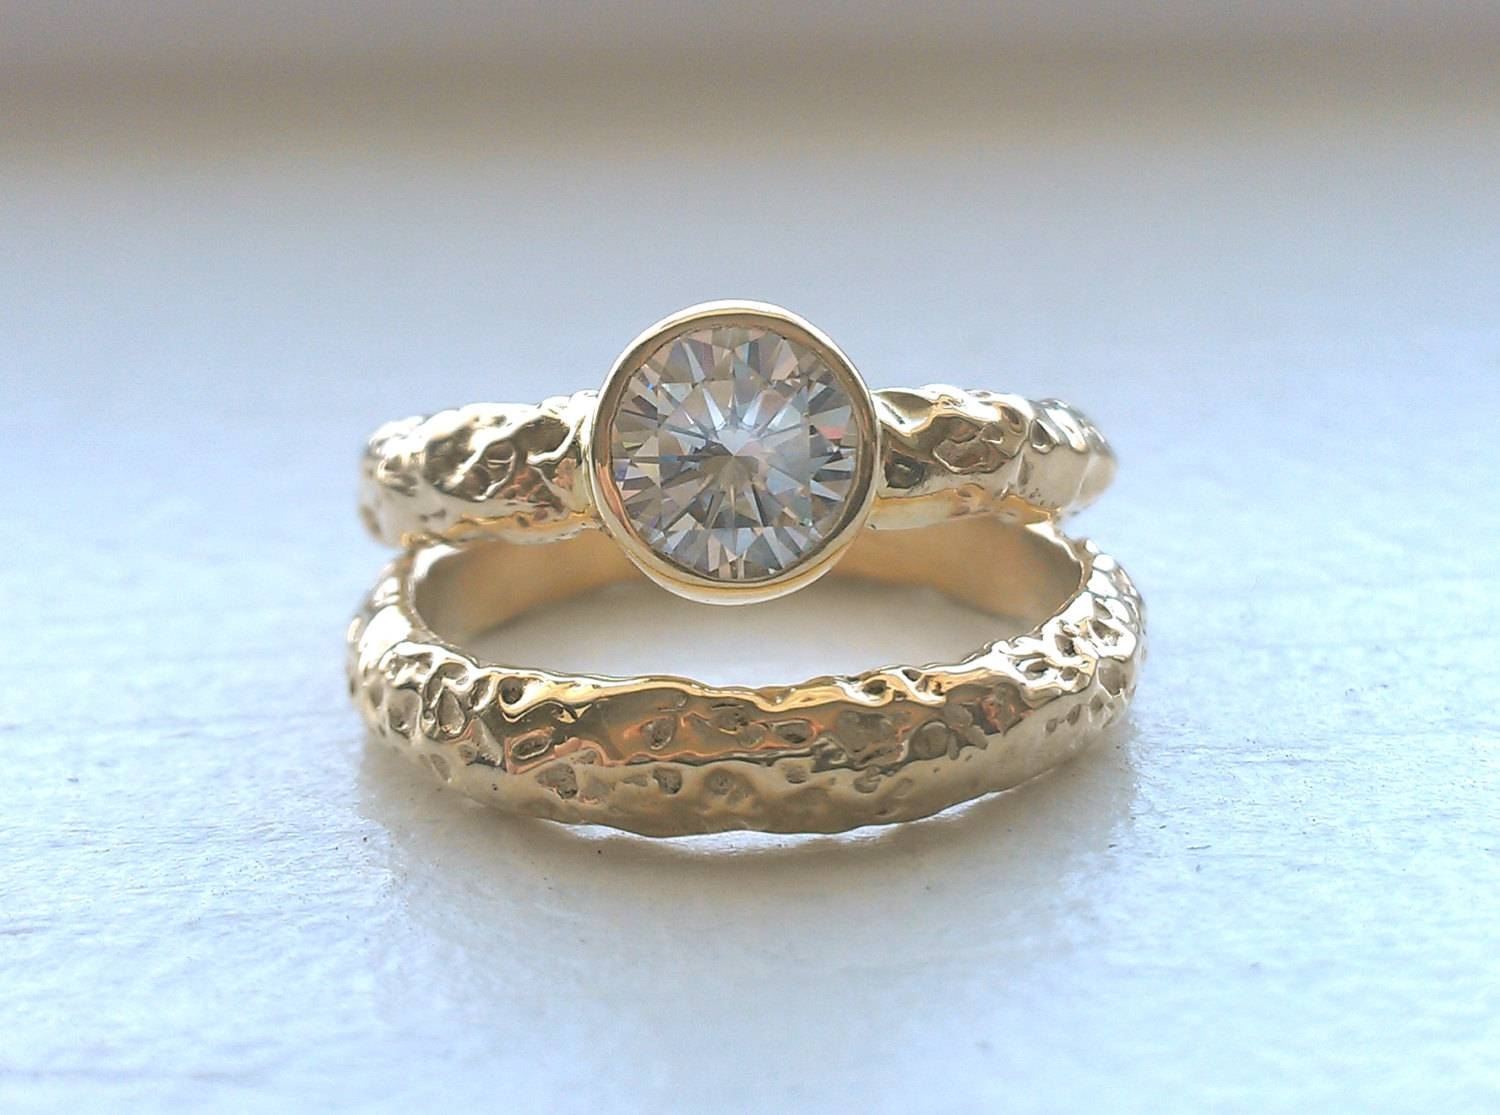 15 Alternative Engagement Rings For A Bad Ass Bride | Southern New Within Diamond Alternative Wedding Rings (View 10 of 15)